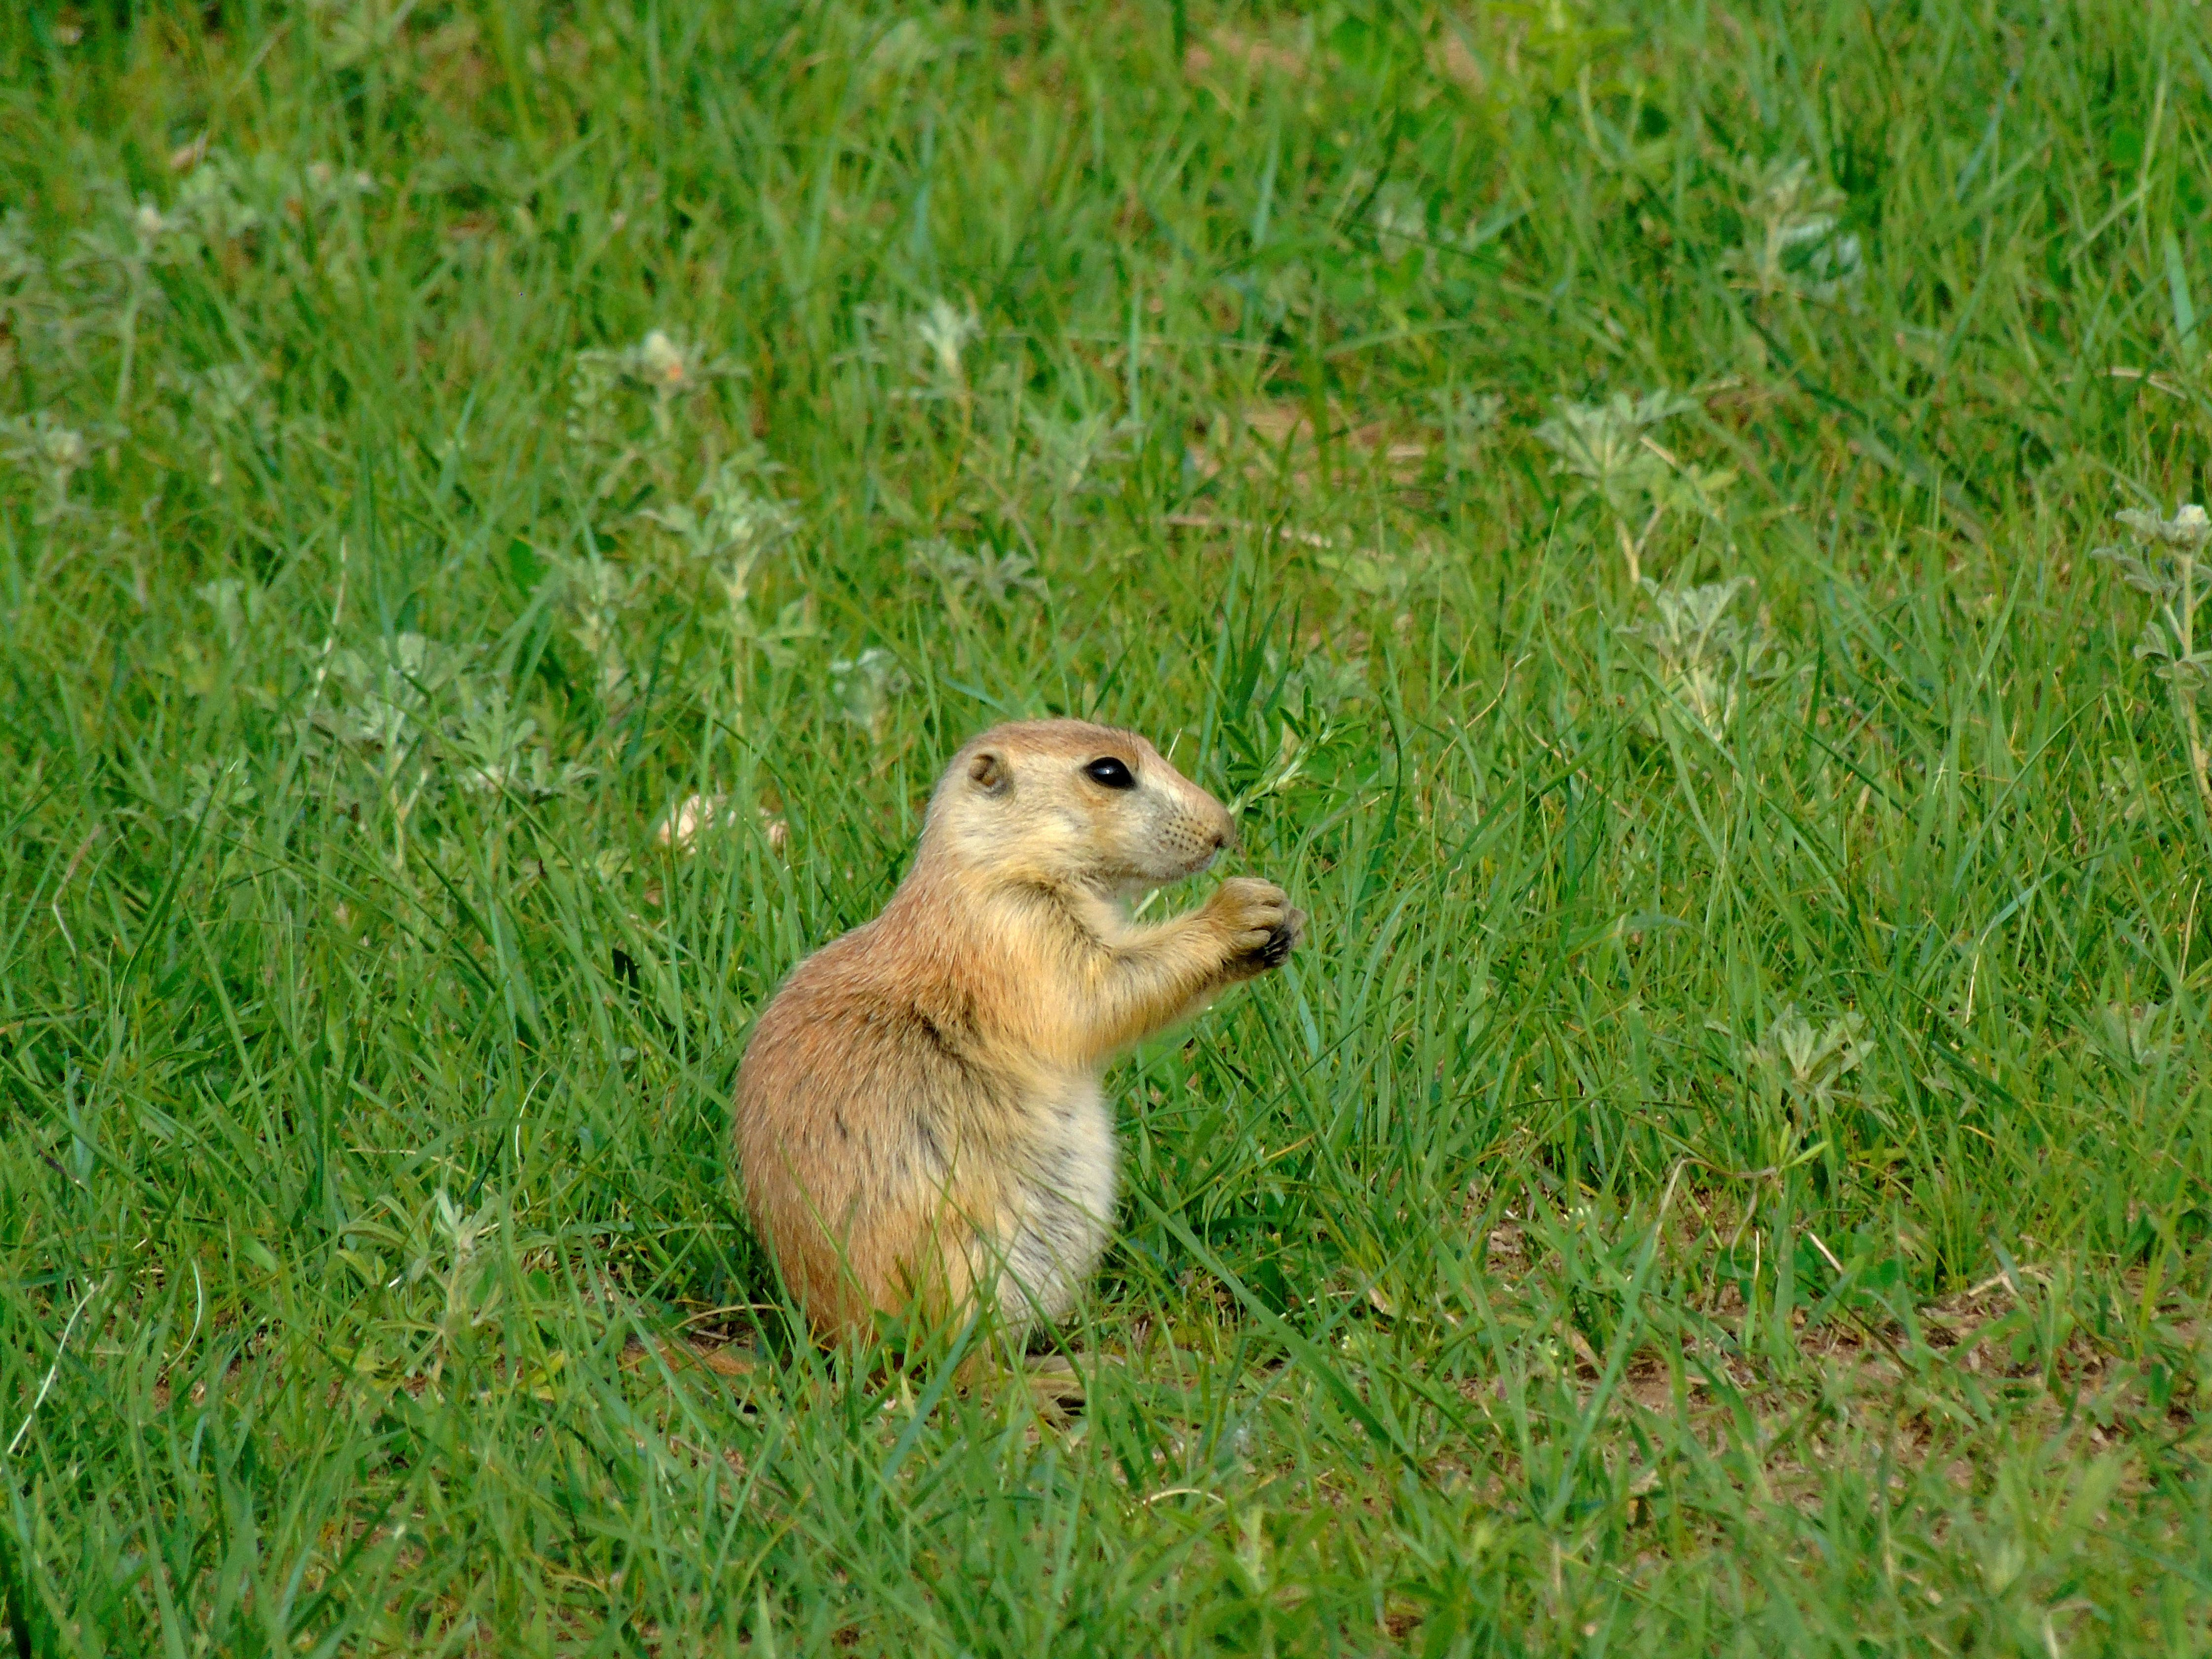 Custer State Park in the Black Hills of South Dakota is famous for its bison herds but the prairie dogs put on a good show, too.